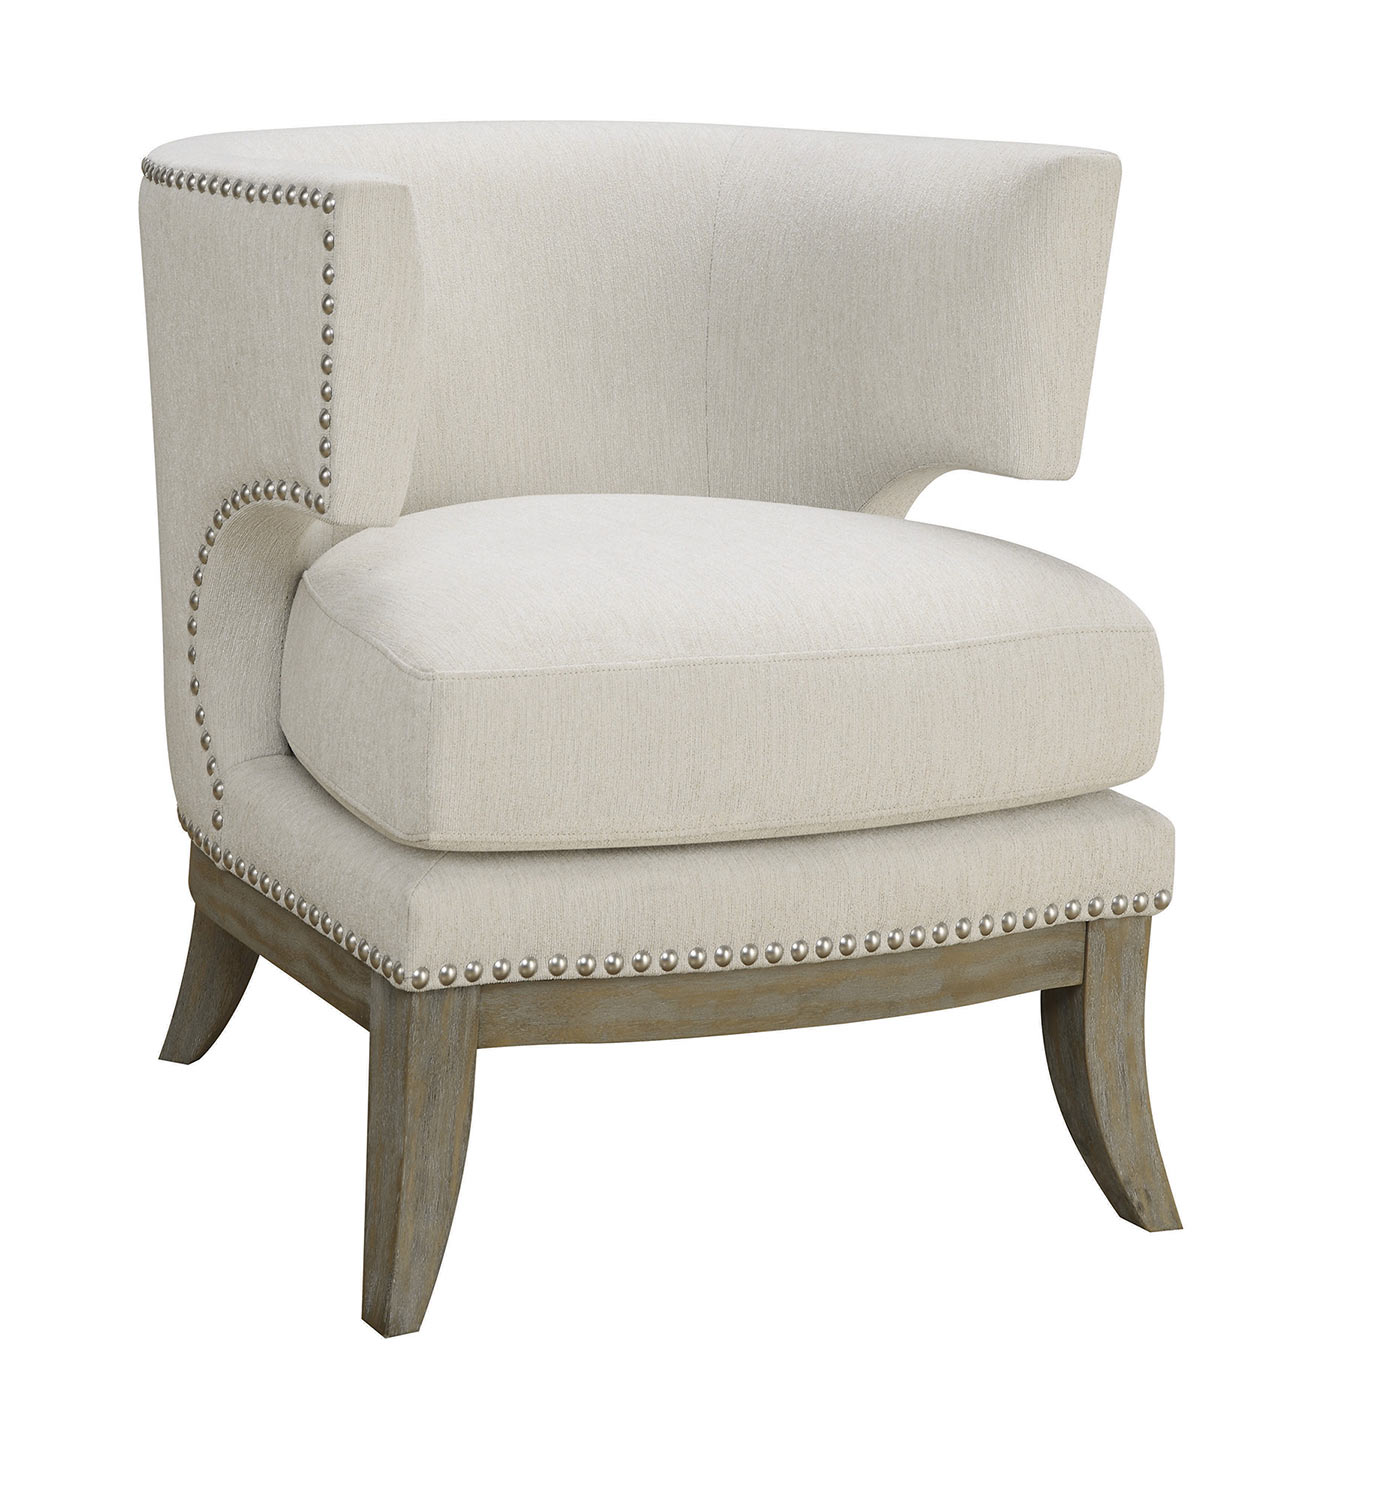 Coaster 902559 Accent Chair - White